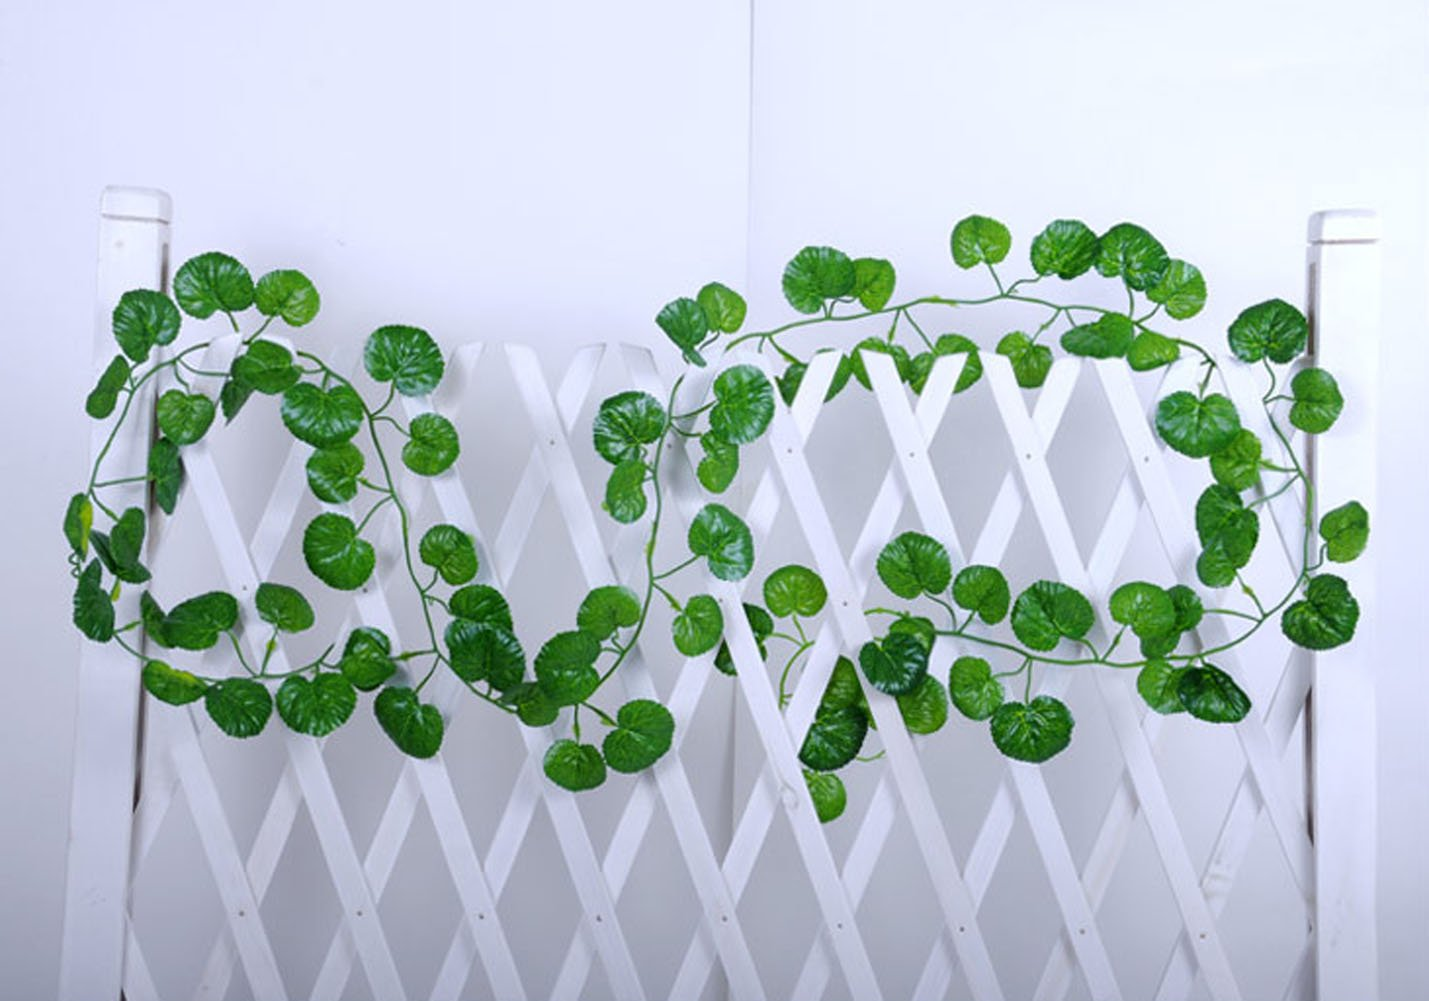 Hapwedding 94 Ft Artificial Ivy for Party,Wedding and Festival Decoration Malus Spectabilis Leaves,12PCS